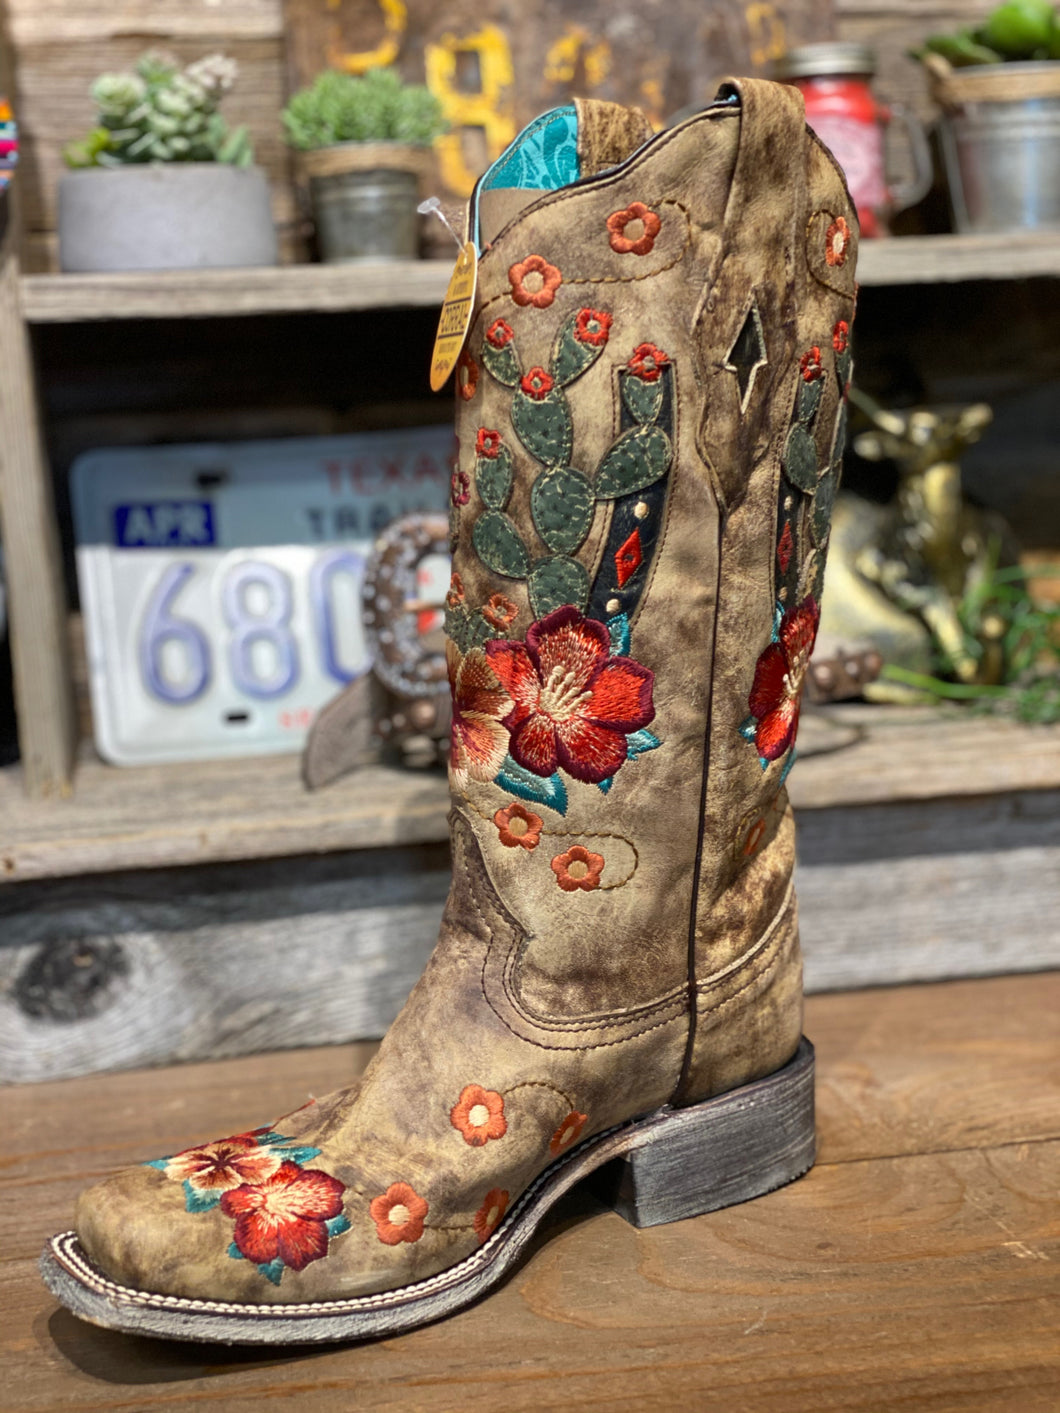 Corral Boots Cactus and Flower Embroidered Boots